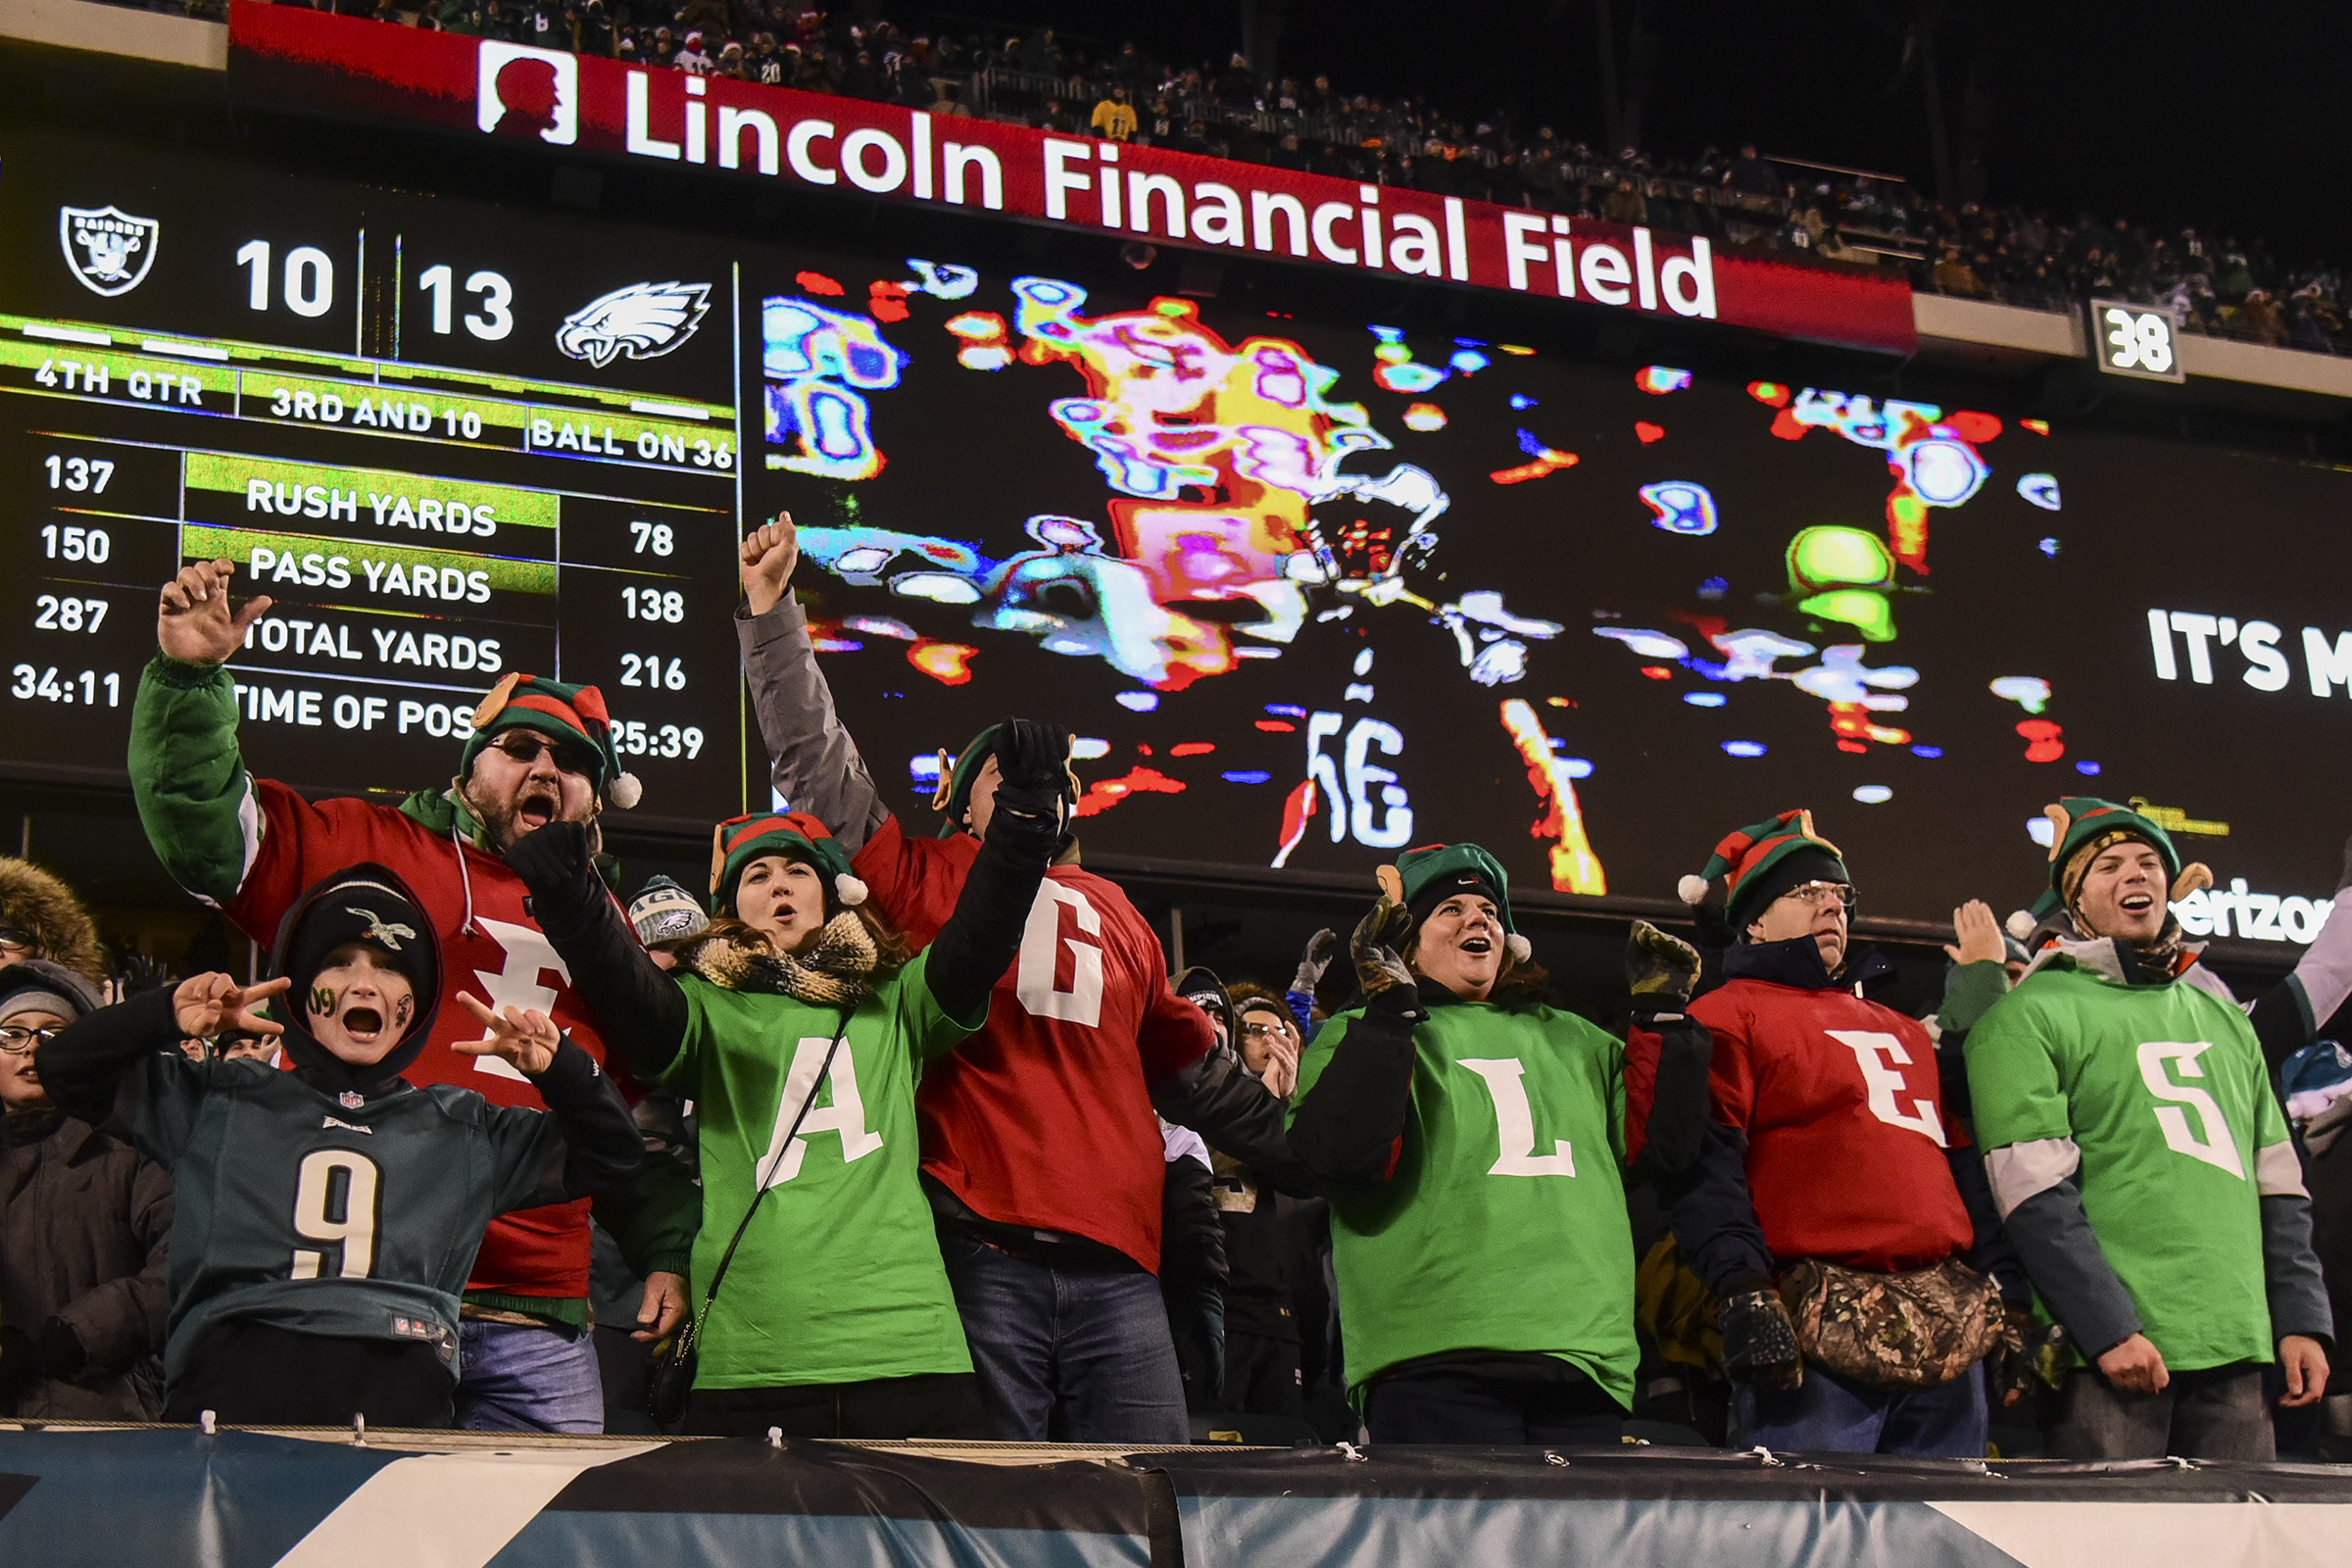 Eagles fans celebrate a play in the game against the Oakland Raider at Lincoln Financial Field in a Monday Night Football game Christmas night 2017. Eagles won 19-10. CLEM MURRAY / Staff Photographer